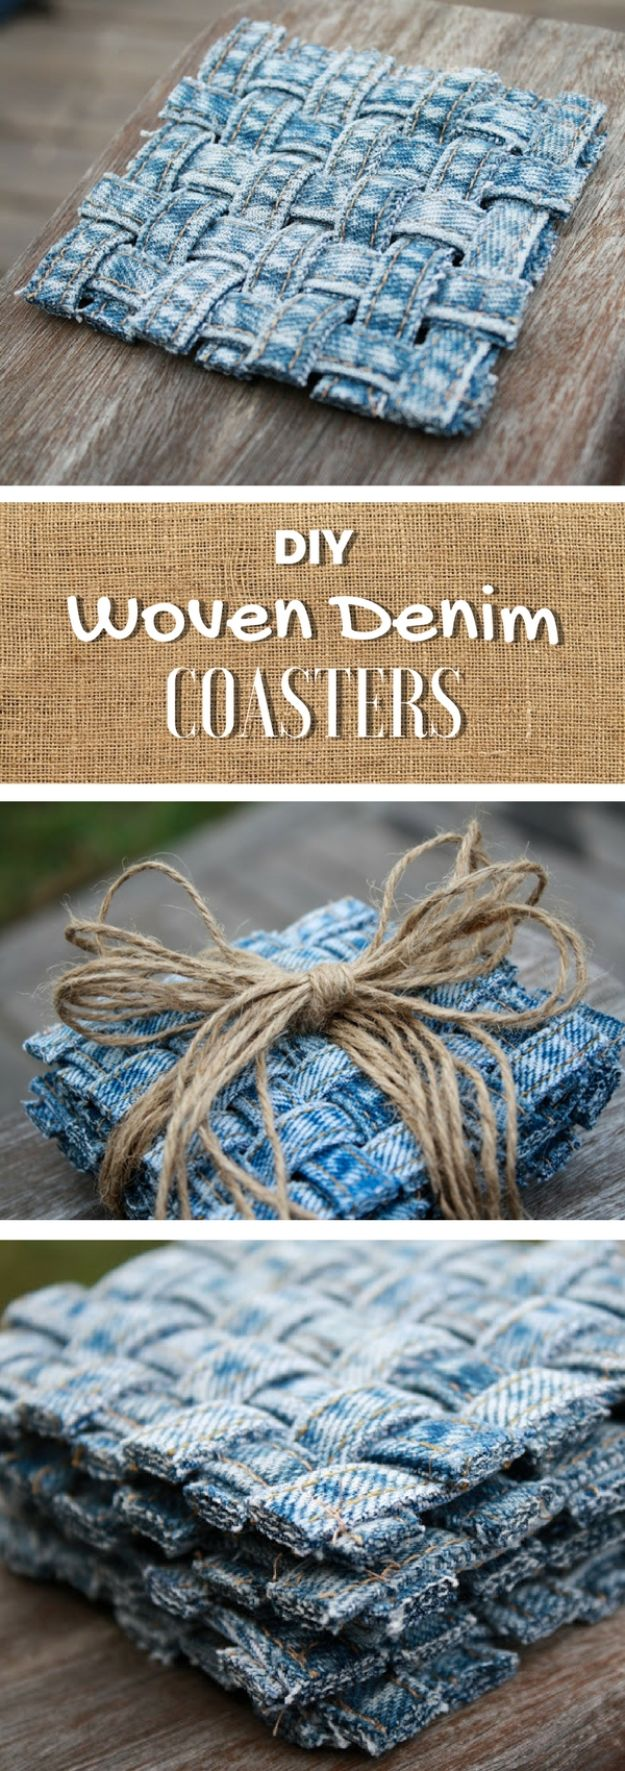 Blue Jean Upcycles - Woven Jean Seam Coasters - Ways to Make Old Denim Jeans Into DIY Home Decor, Handmade Gifts and Creative Fashion - Transform Old Blue Jeans into Pillows, Rugs, Kitchen and Living Room Decor, Easy Sewing Projects for Beginners http://diyjoy.com/diy-blue-jeans-upcyle-ideas